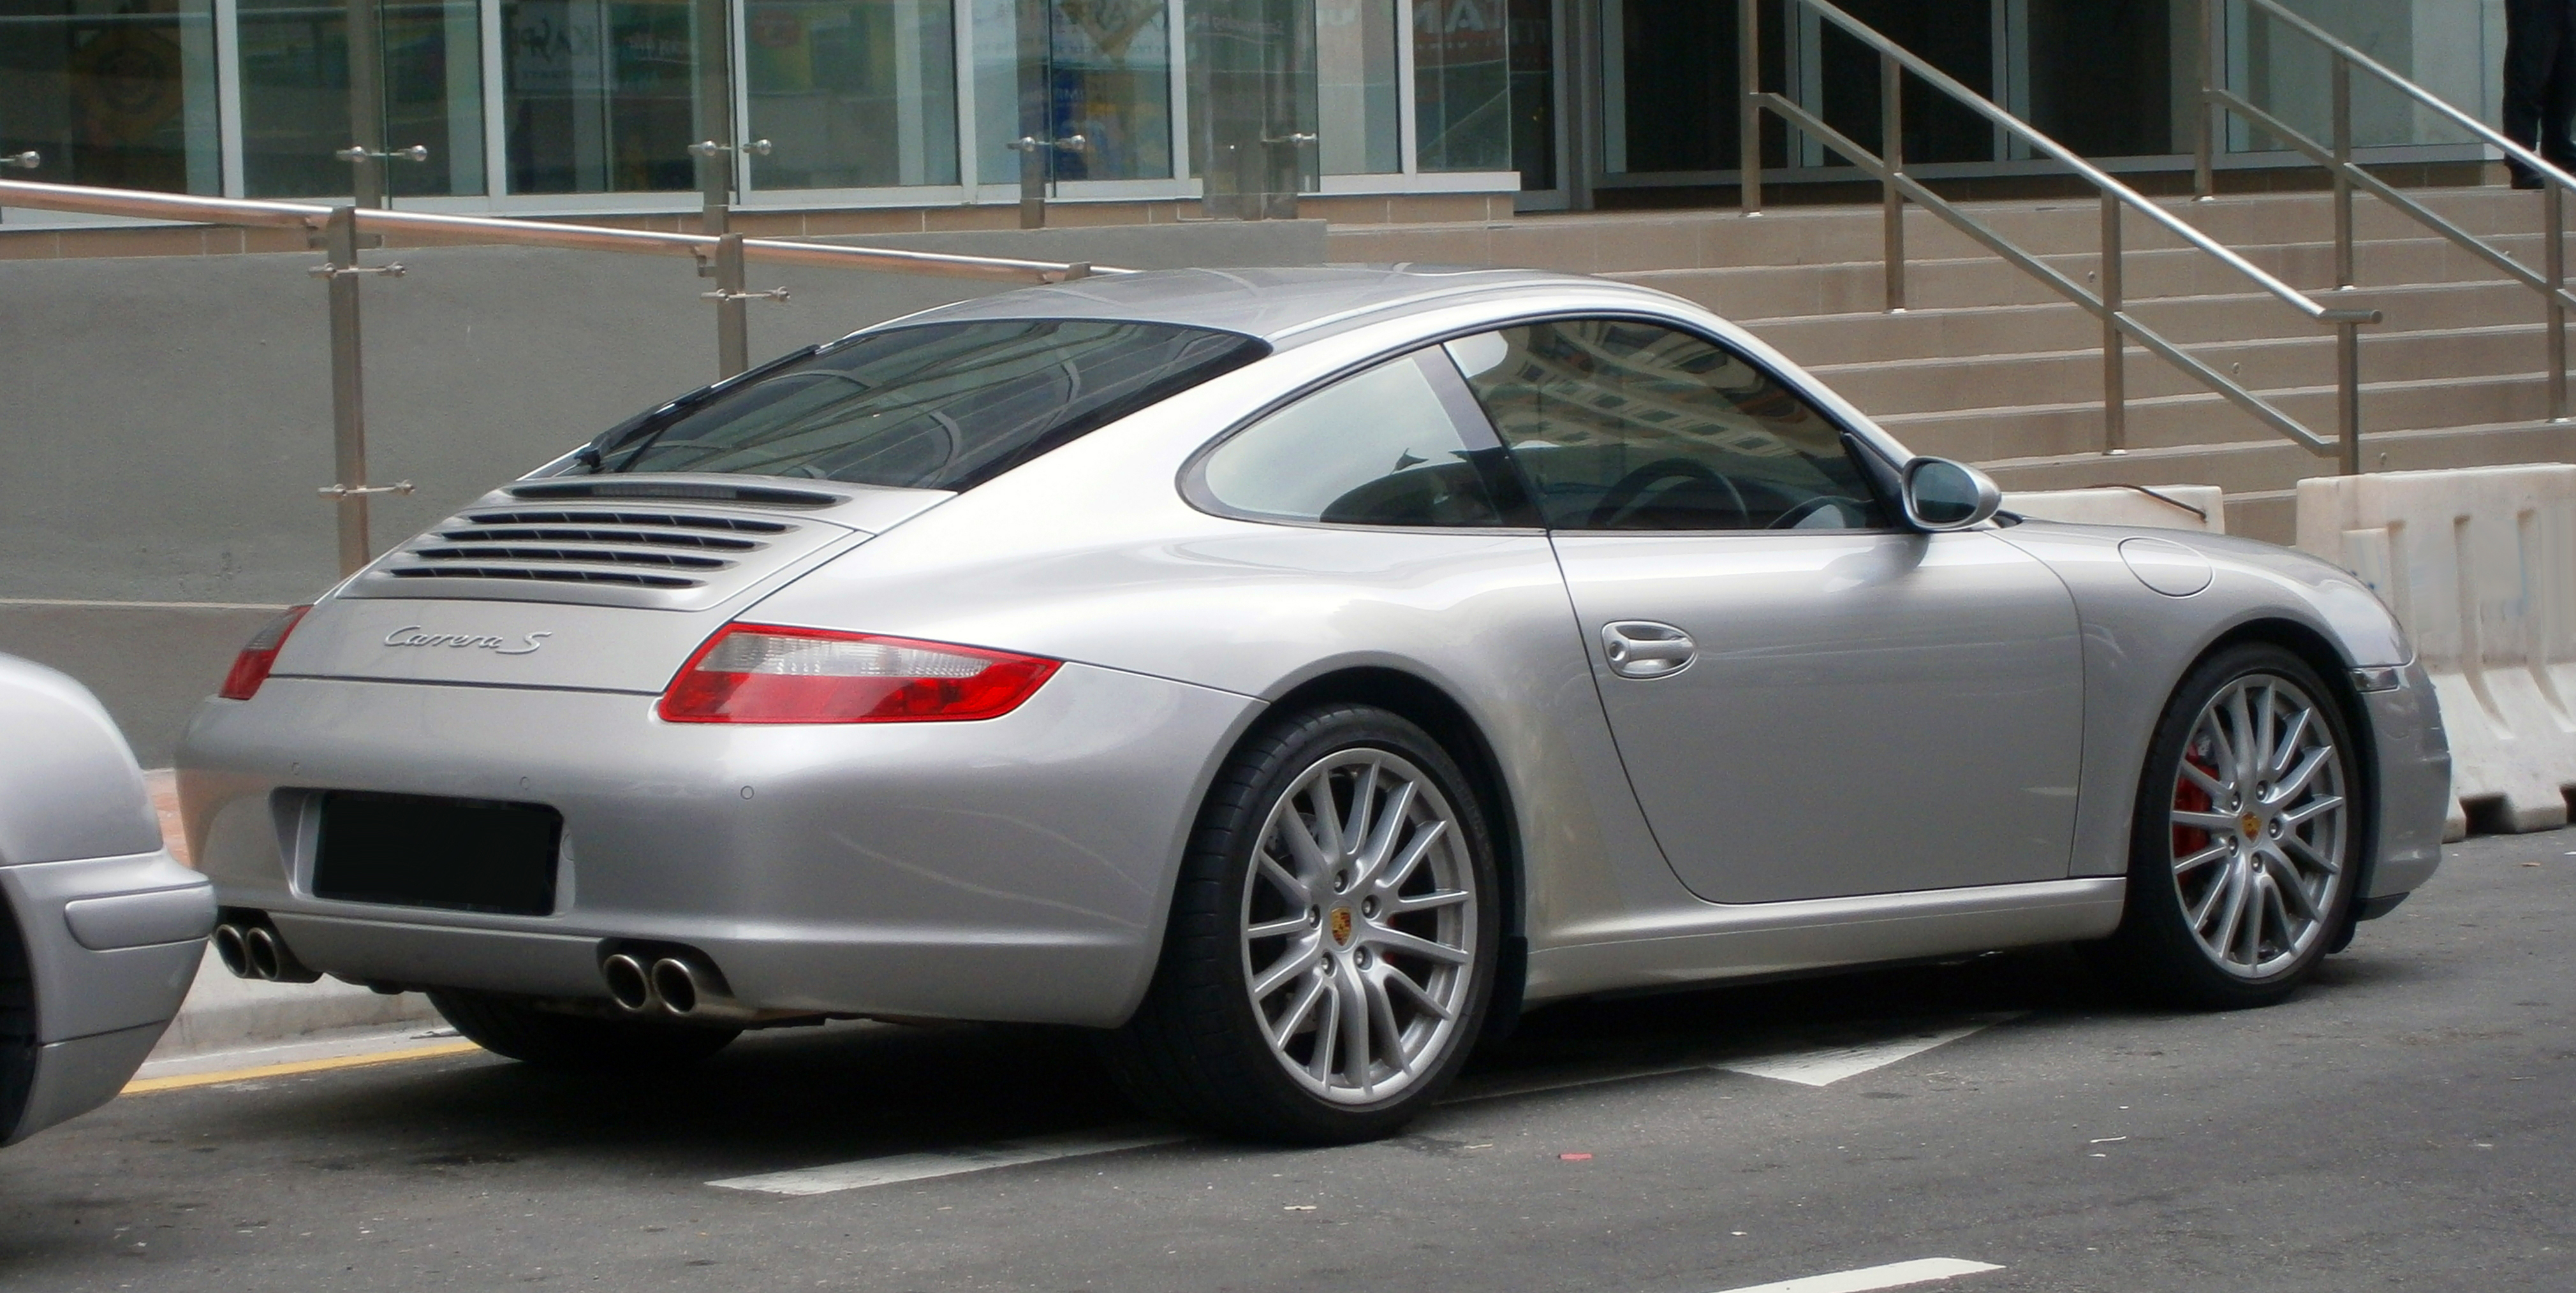 file 2004 2008 porsche 911 997 carrera s in petaling jaya malaysia 02 jpg wikimedia commons. Black Bedroom Furniture Sets. Home Design Ideas